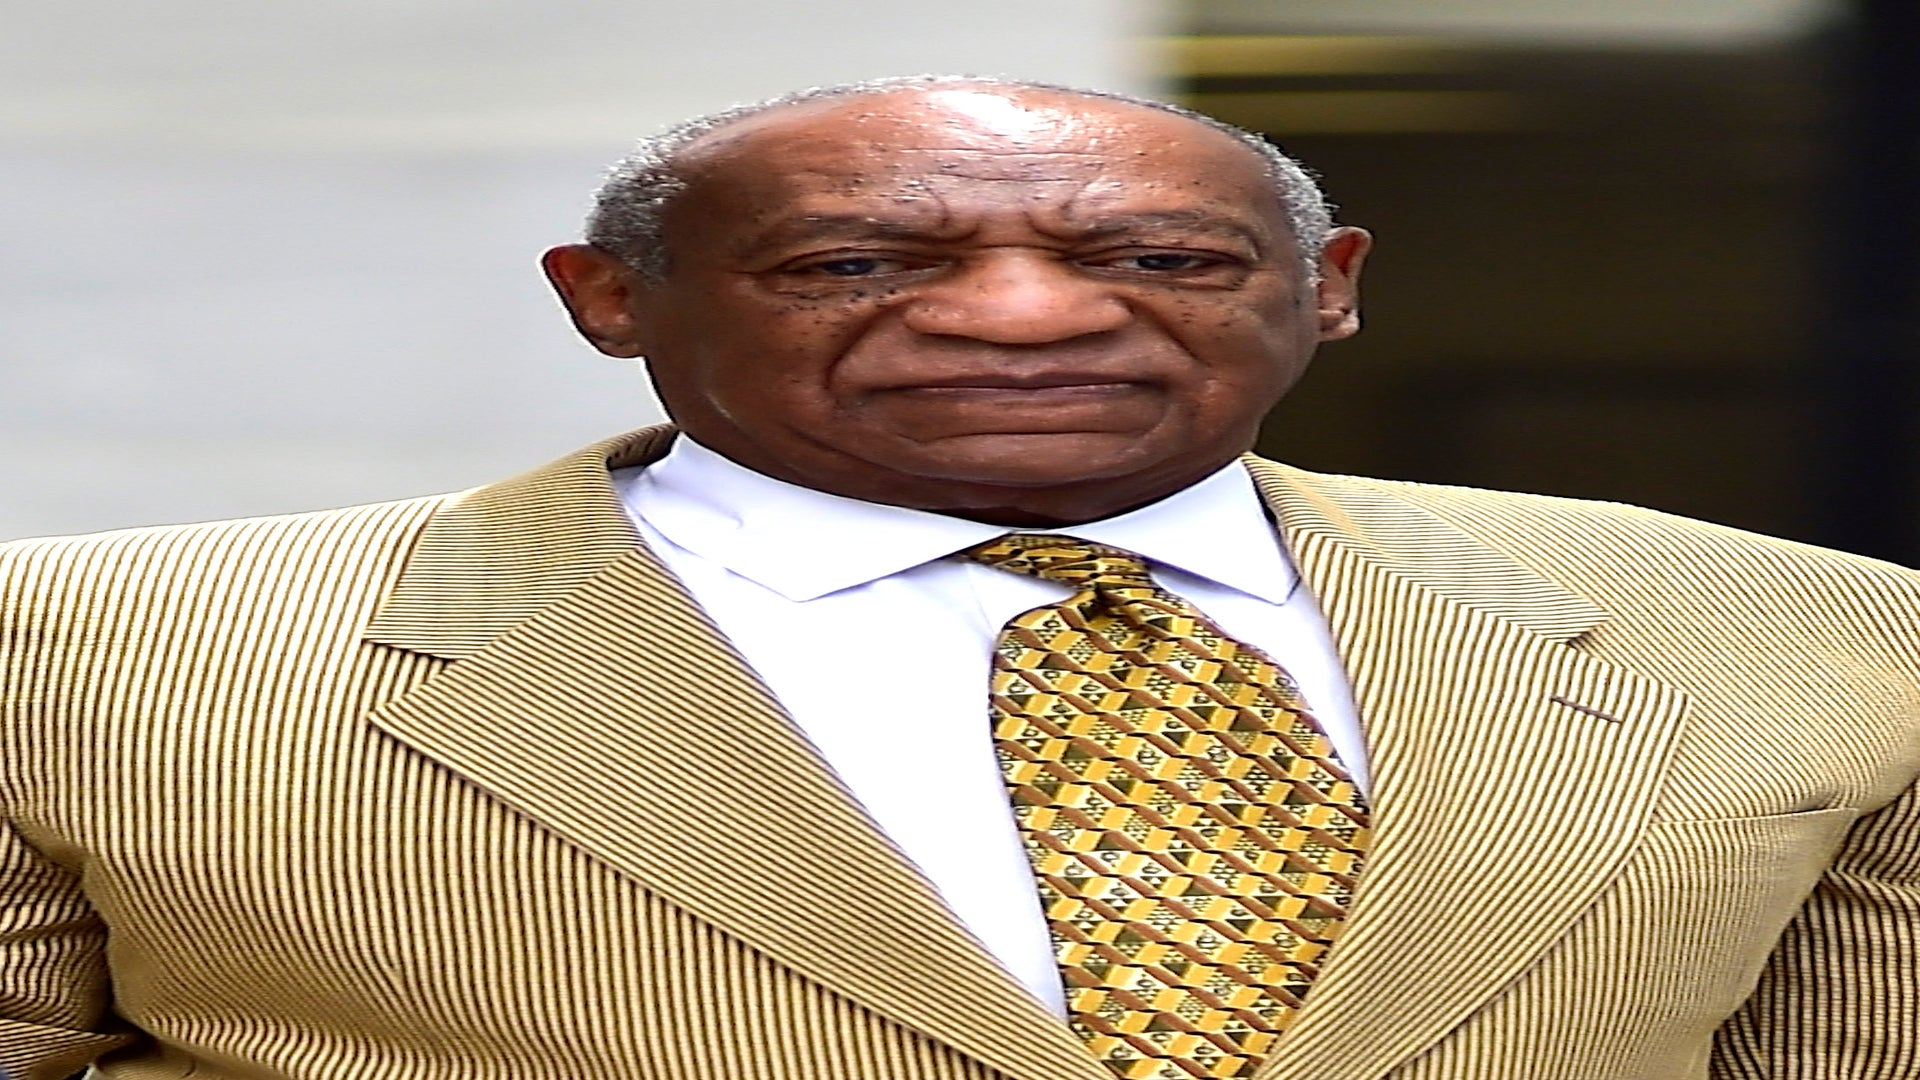 Prosecutors In Bill Cosby Case Push For 13 Of His Accusers To Testify During Criminal Trial